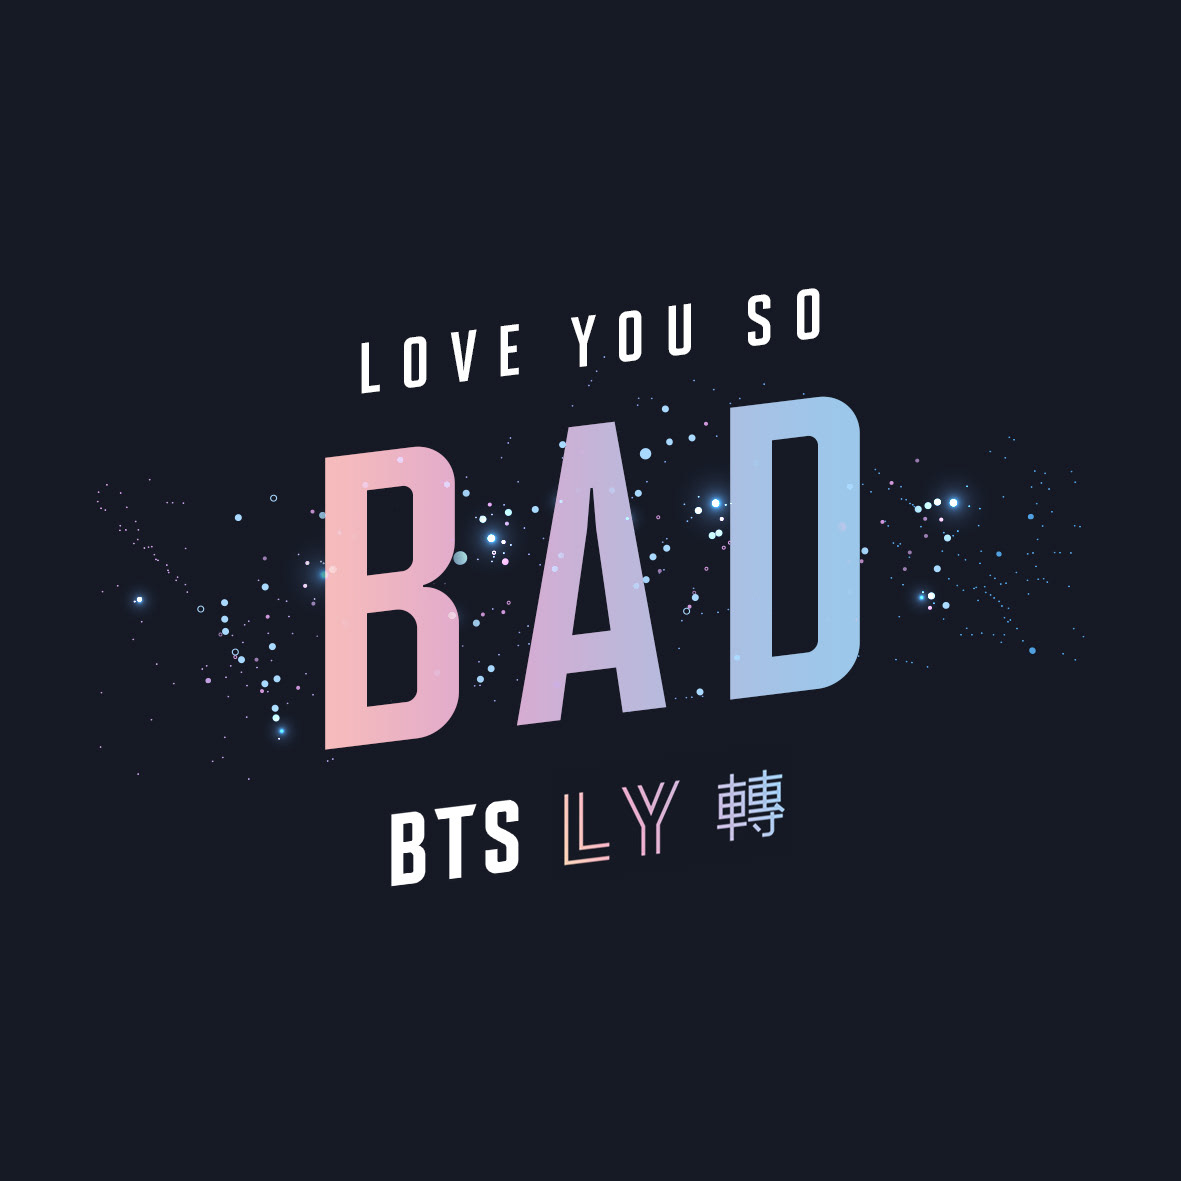 Download Avatars And Header For Bts Comeback On Behance